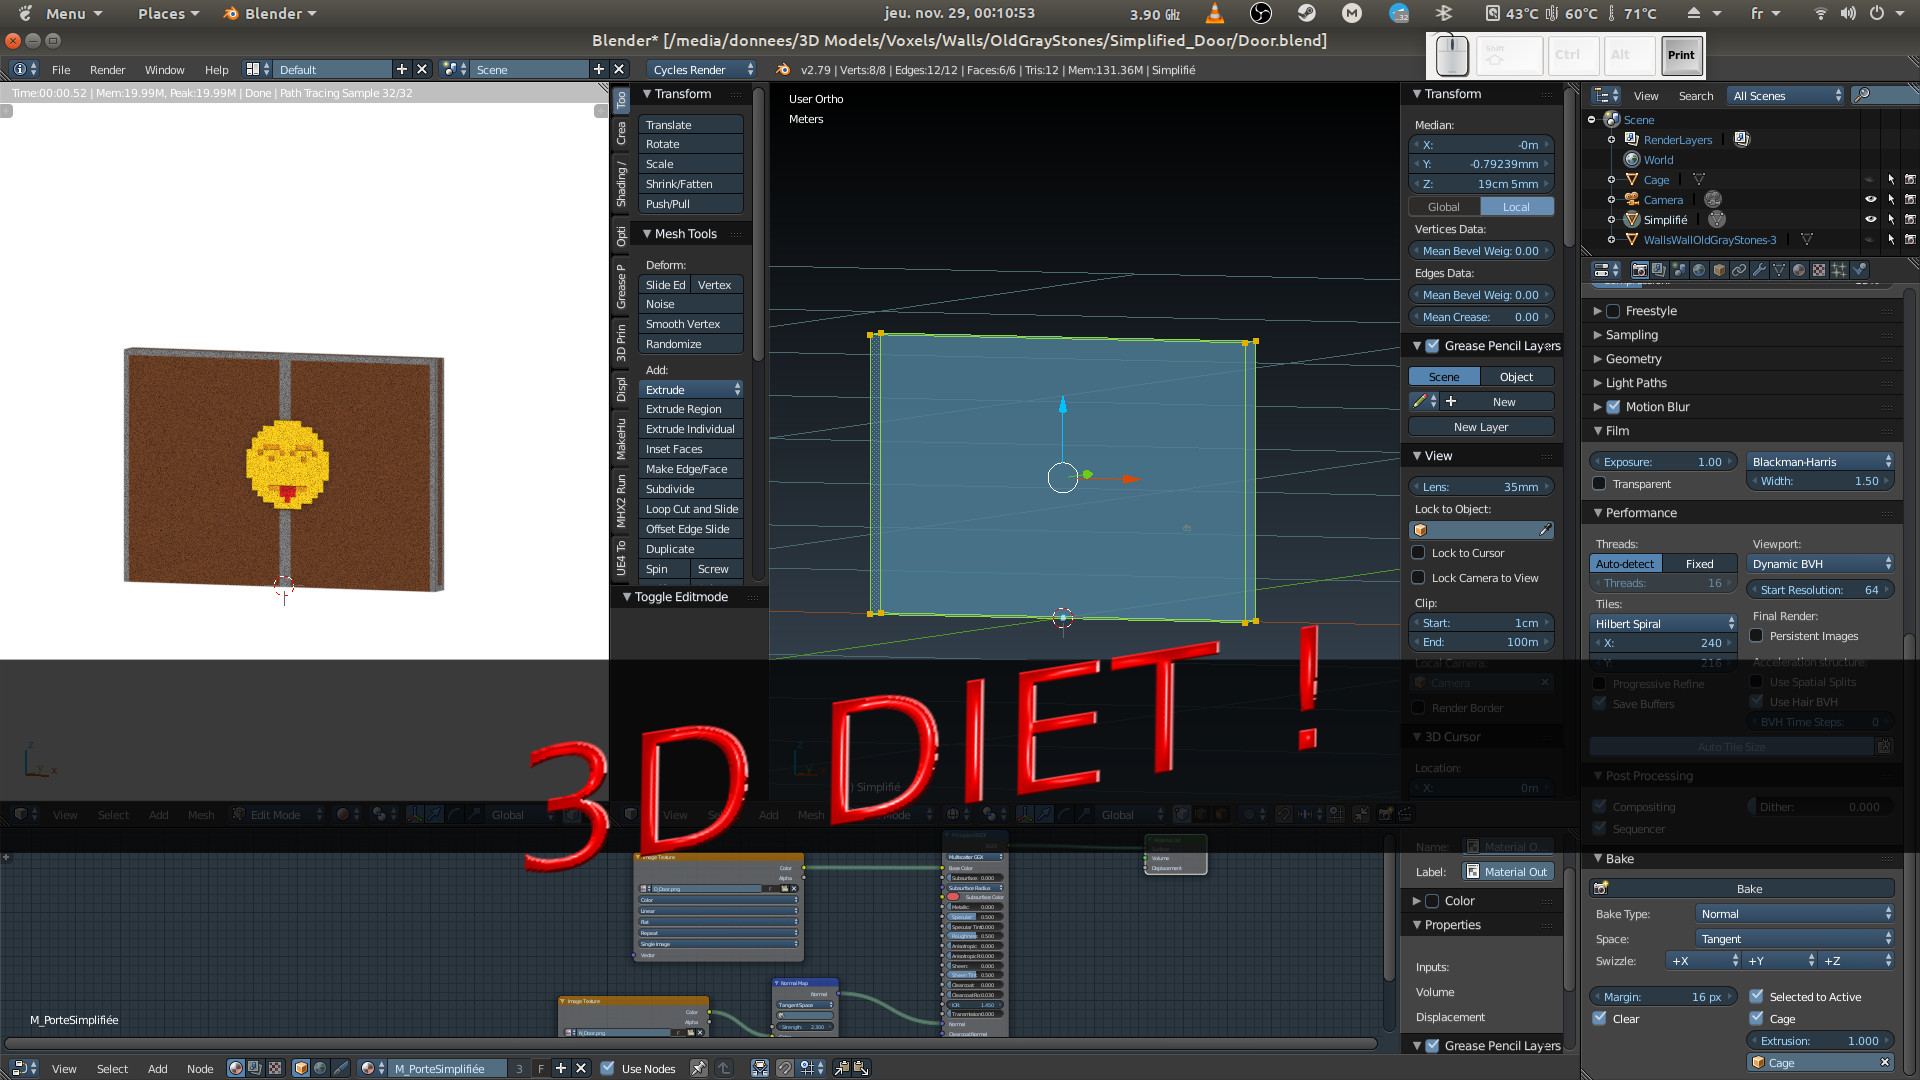 Blender : Bake Texture and Normal Map to reduce cost